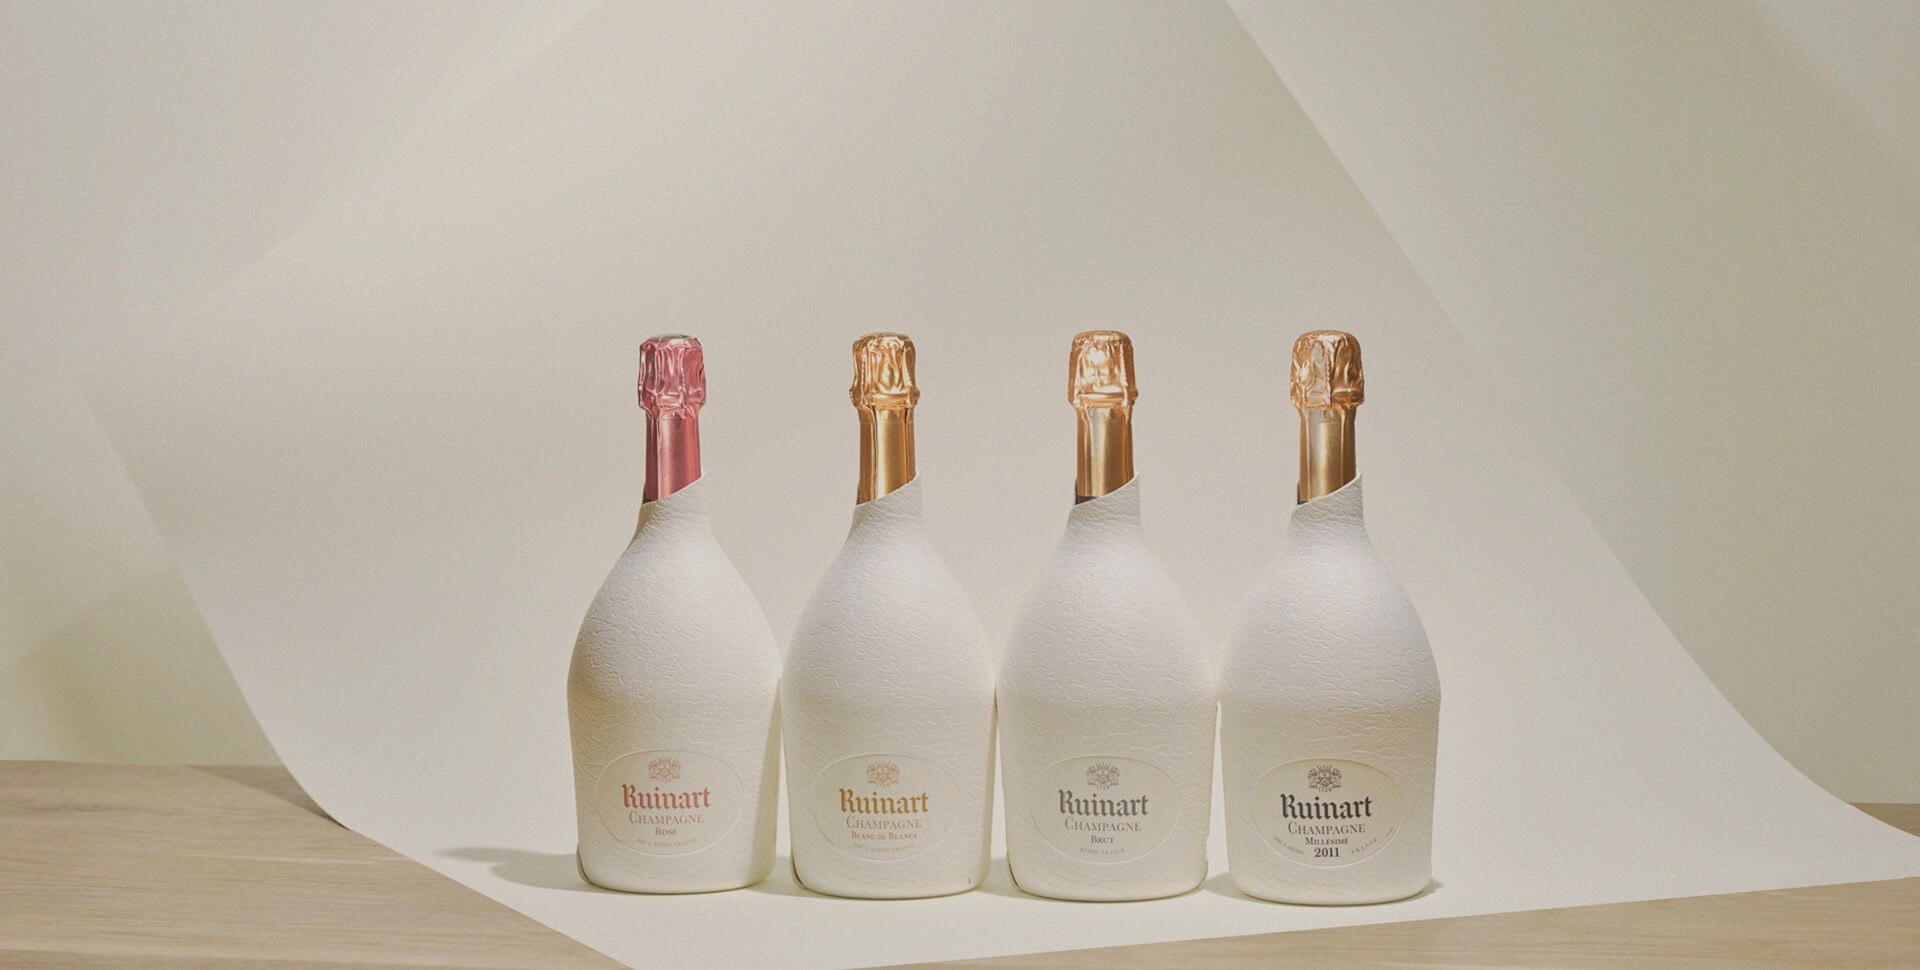 Ruinart Second Skin Champagne Blanc de Blancs Sustainable Packaging Range